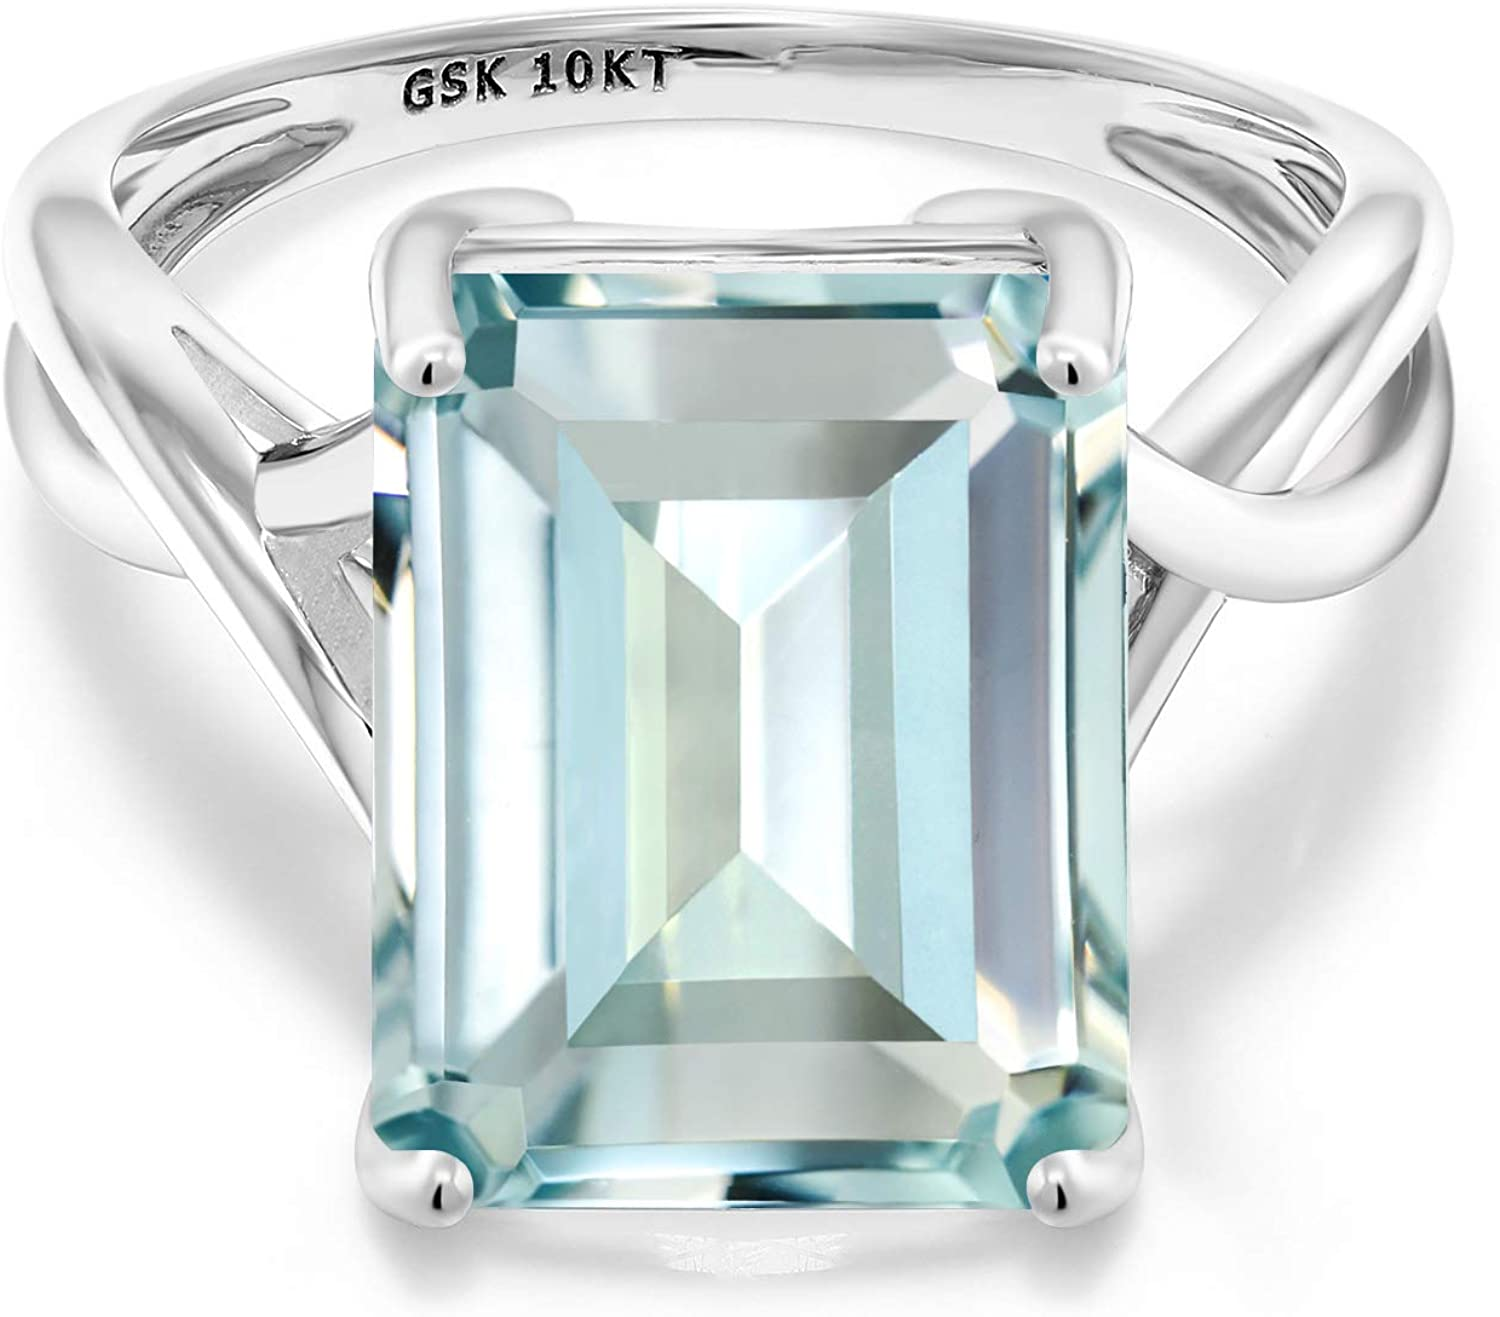 Gem Stone King 10K White Gold Sky Blue Simulated Aquamarine Women's  Engagement Ring (6.64 Cttw, Emerald Cut 14X10MM, Available in size 5, 6, 7,  8, 9) | Amazon.com